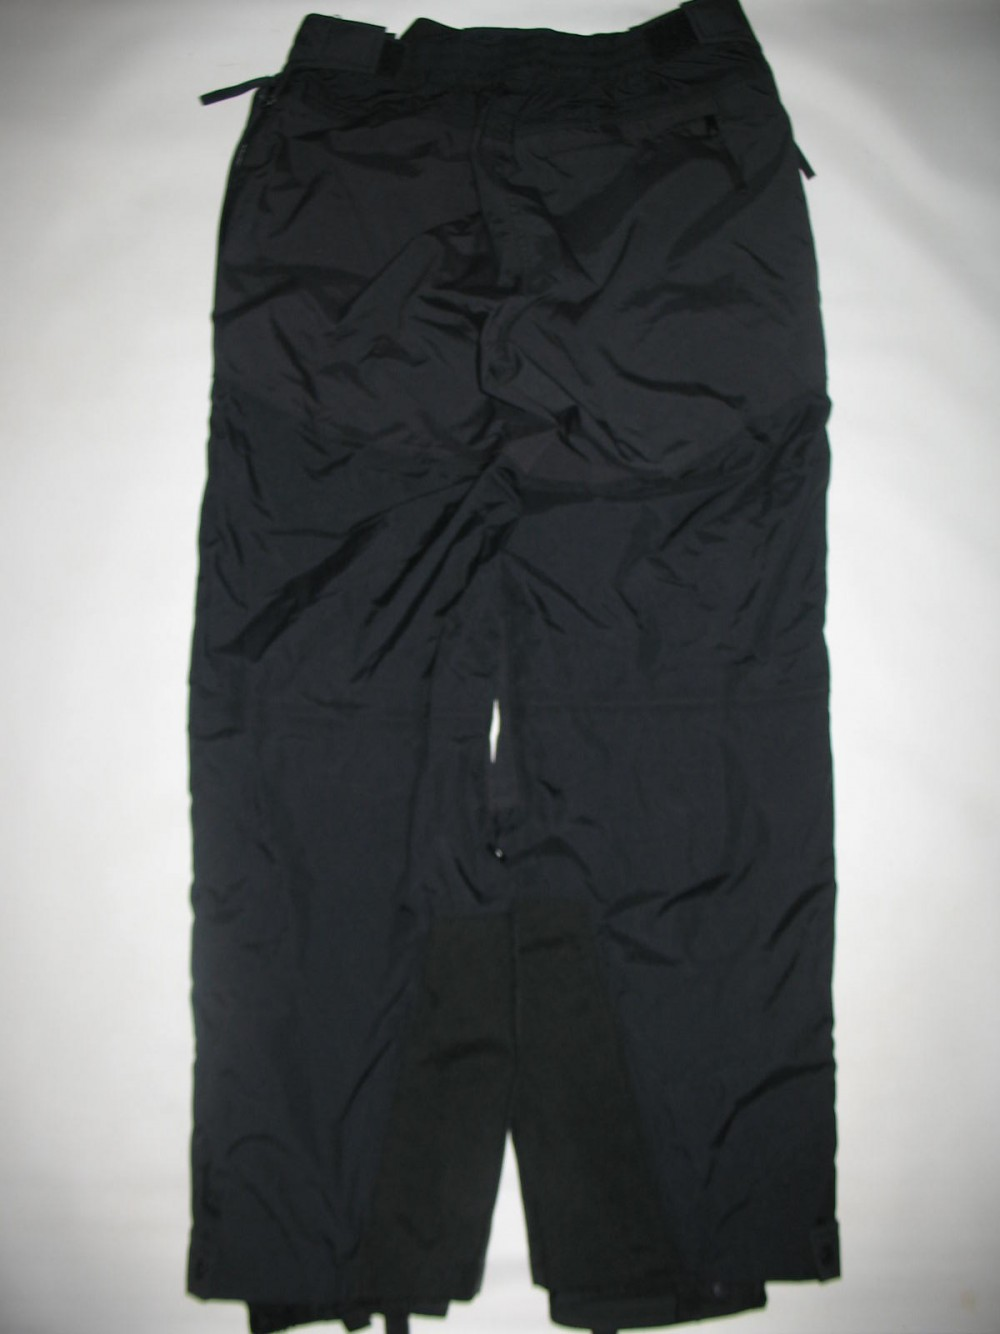 Штаны MOUNTAIN HARDWEAR hiking pants (размер XL) - 3